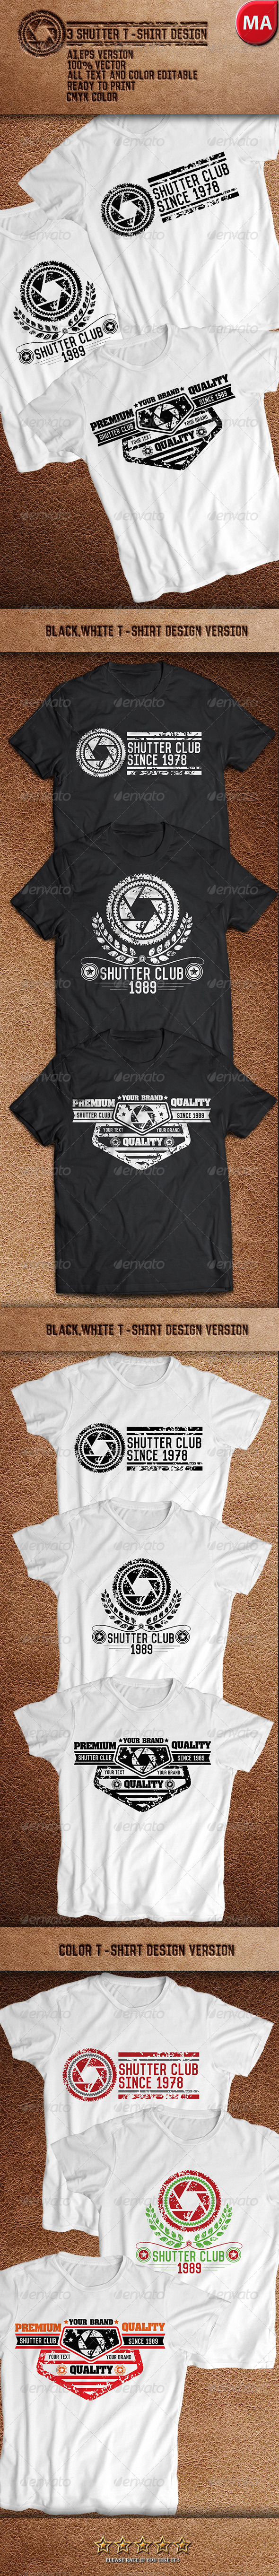 GraphicRiver 3 Shutter T-Shirt Design 7734070